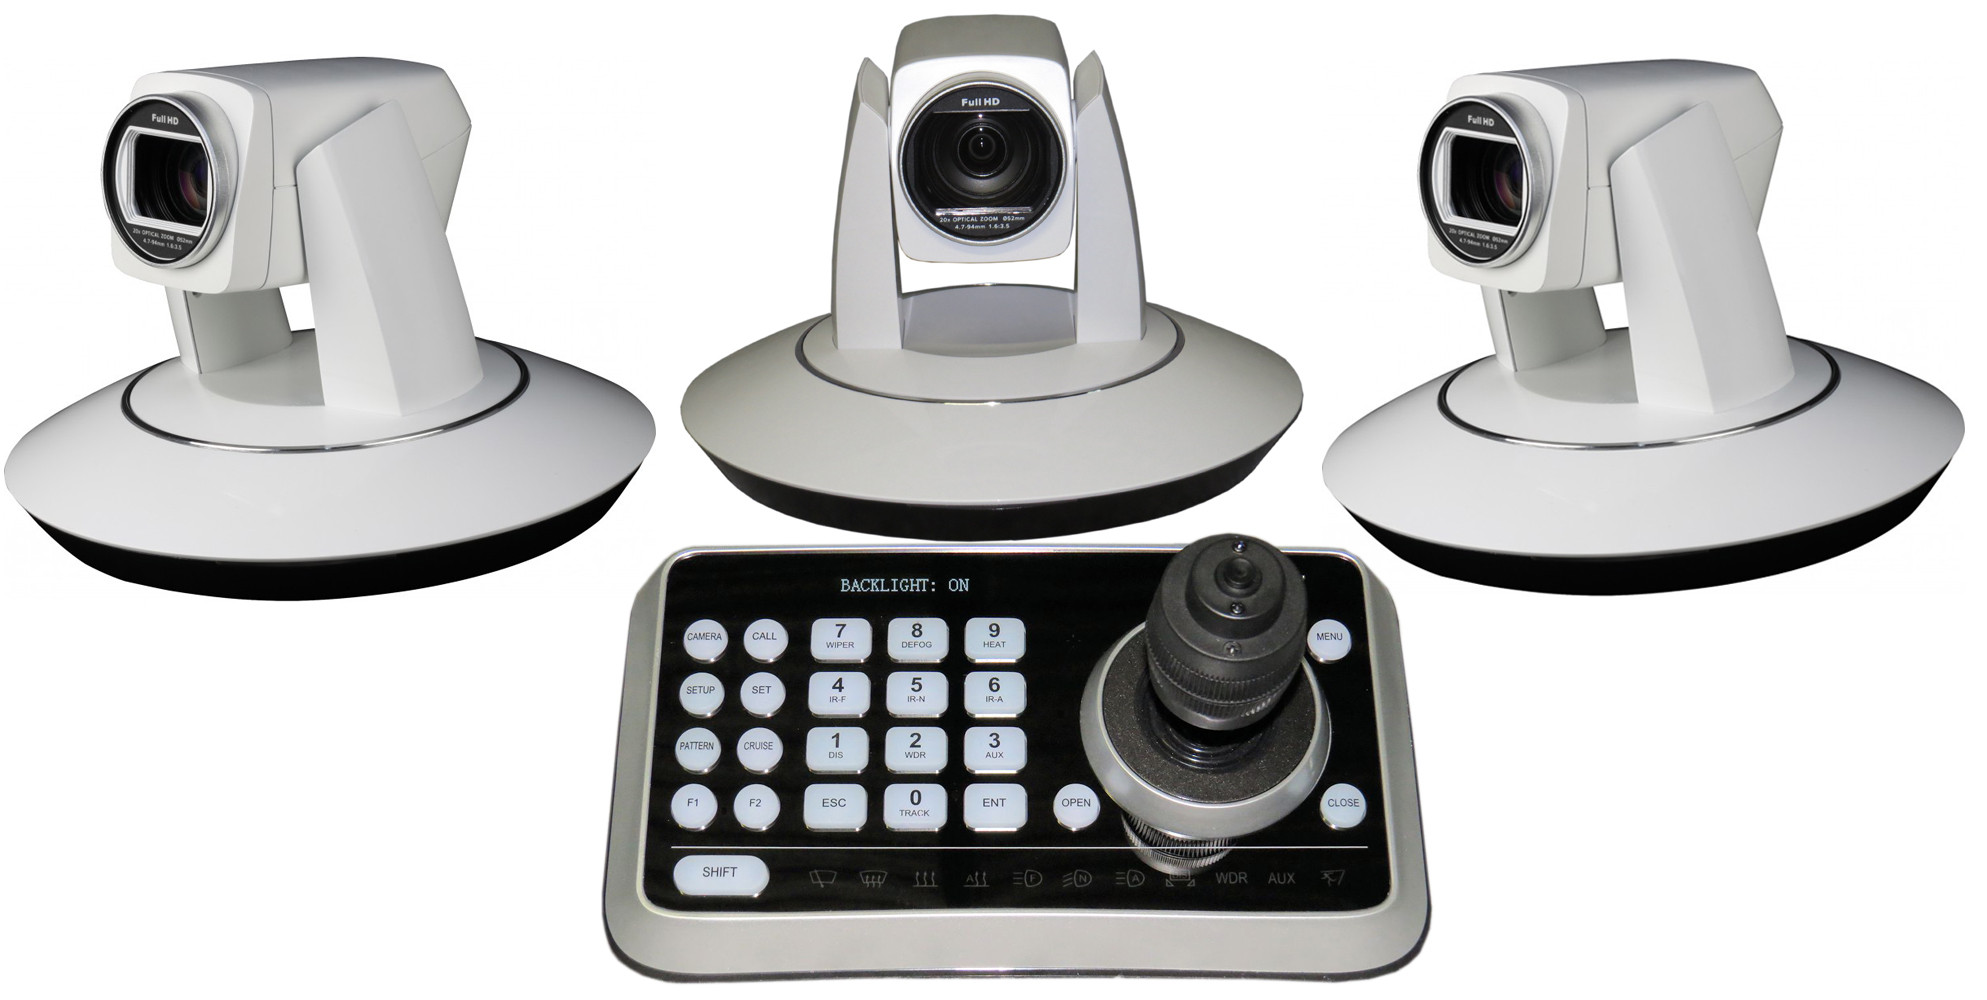 3x hd color ptz robotic video cameras with controller for Camera and camera